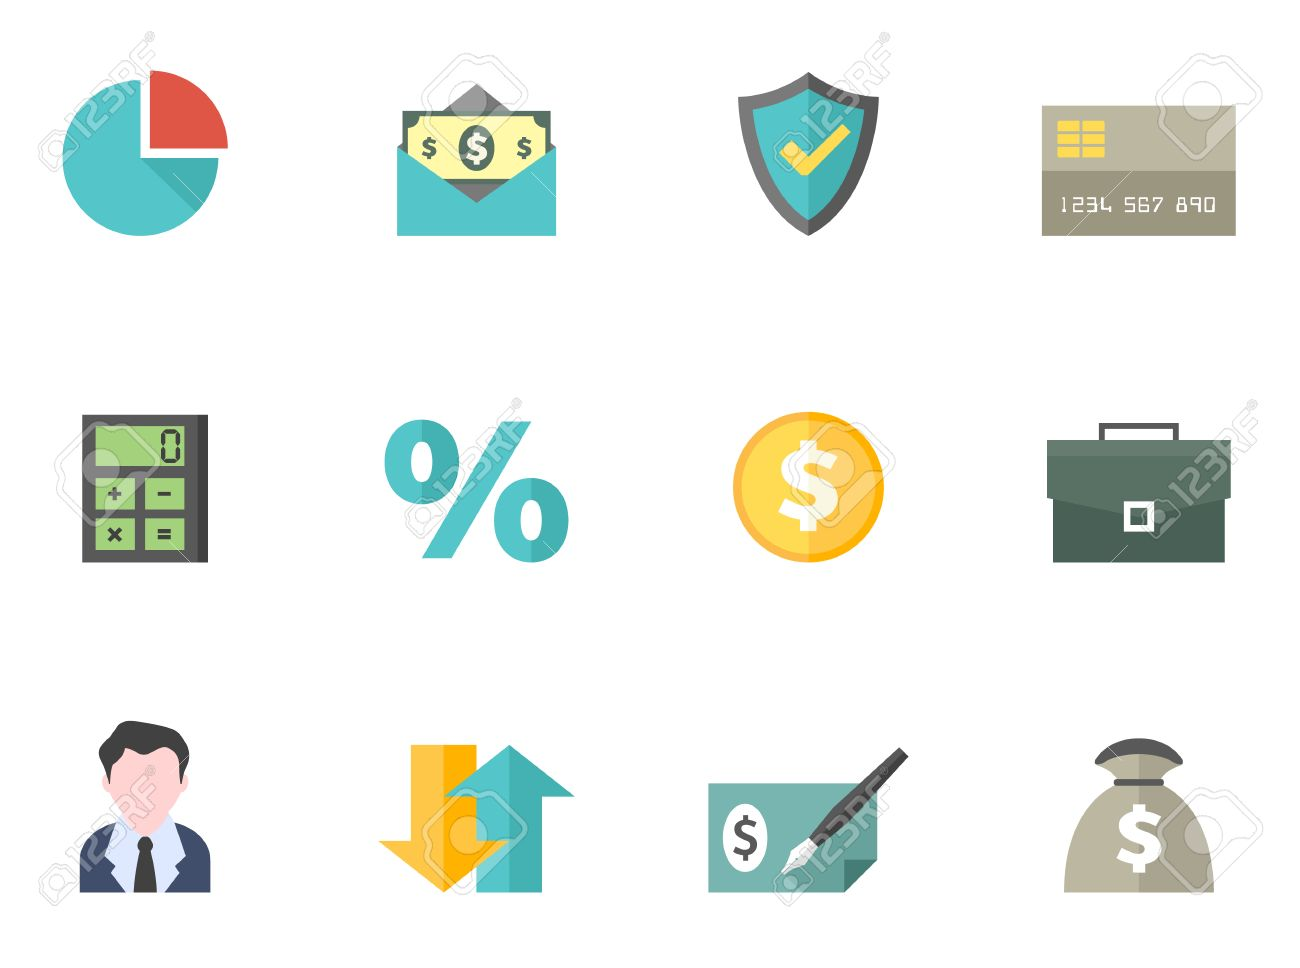 Finance Icon Series In Flat Colors Style Eps 10 With Ai Pdf Png File Of Each Icon Included Font Source Amaranth Bitwise Royalty Free Cliparts Vectors And Stock Illustration Image 34190633